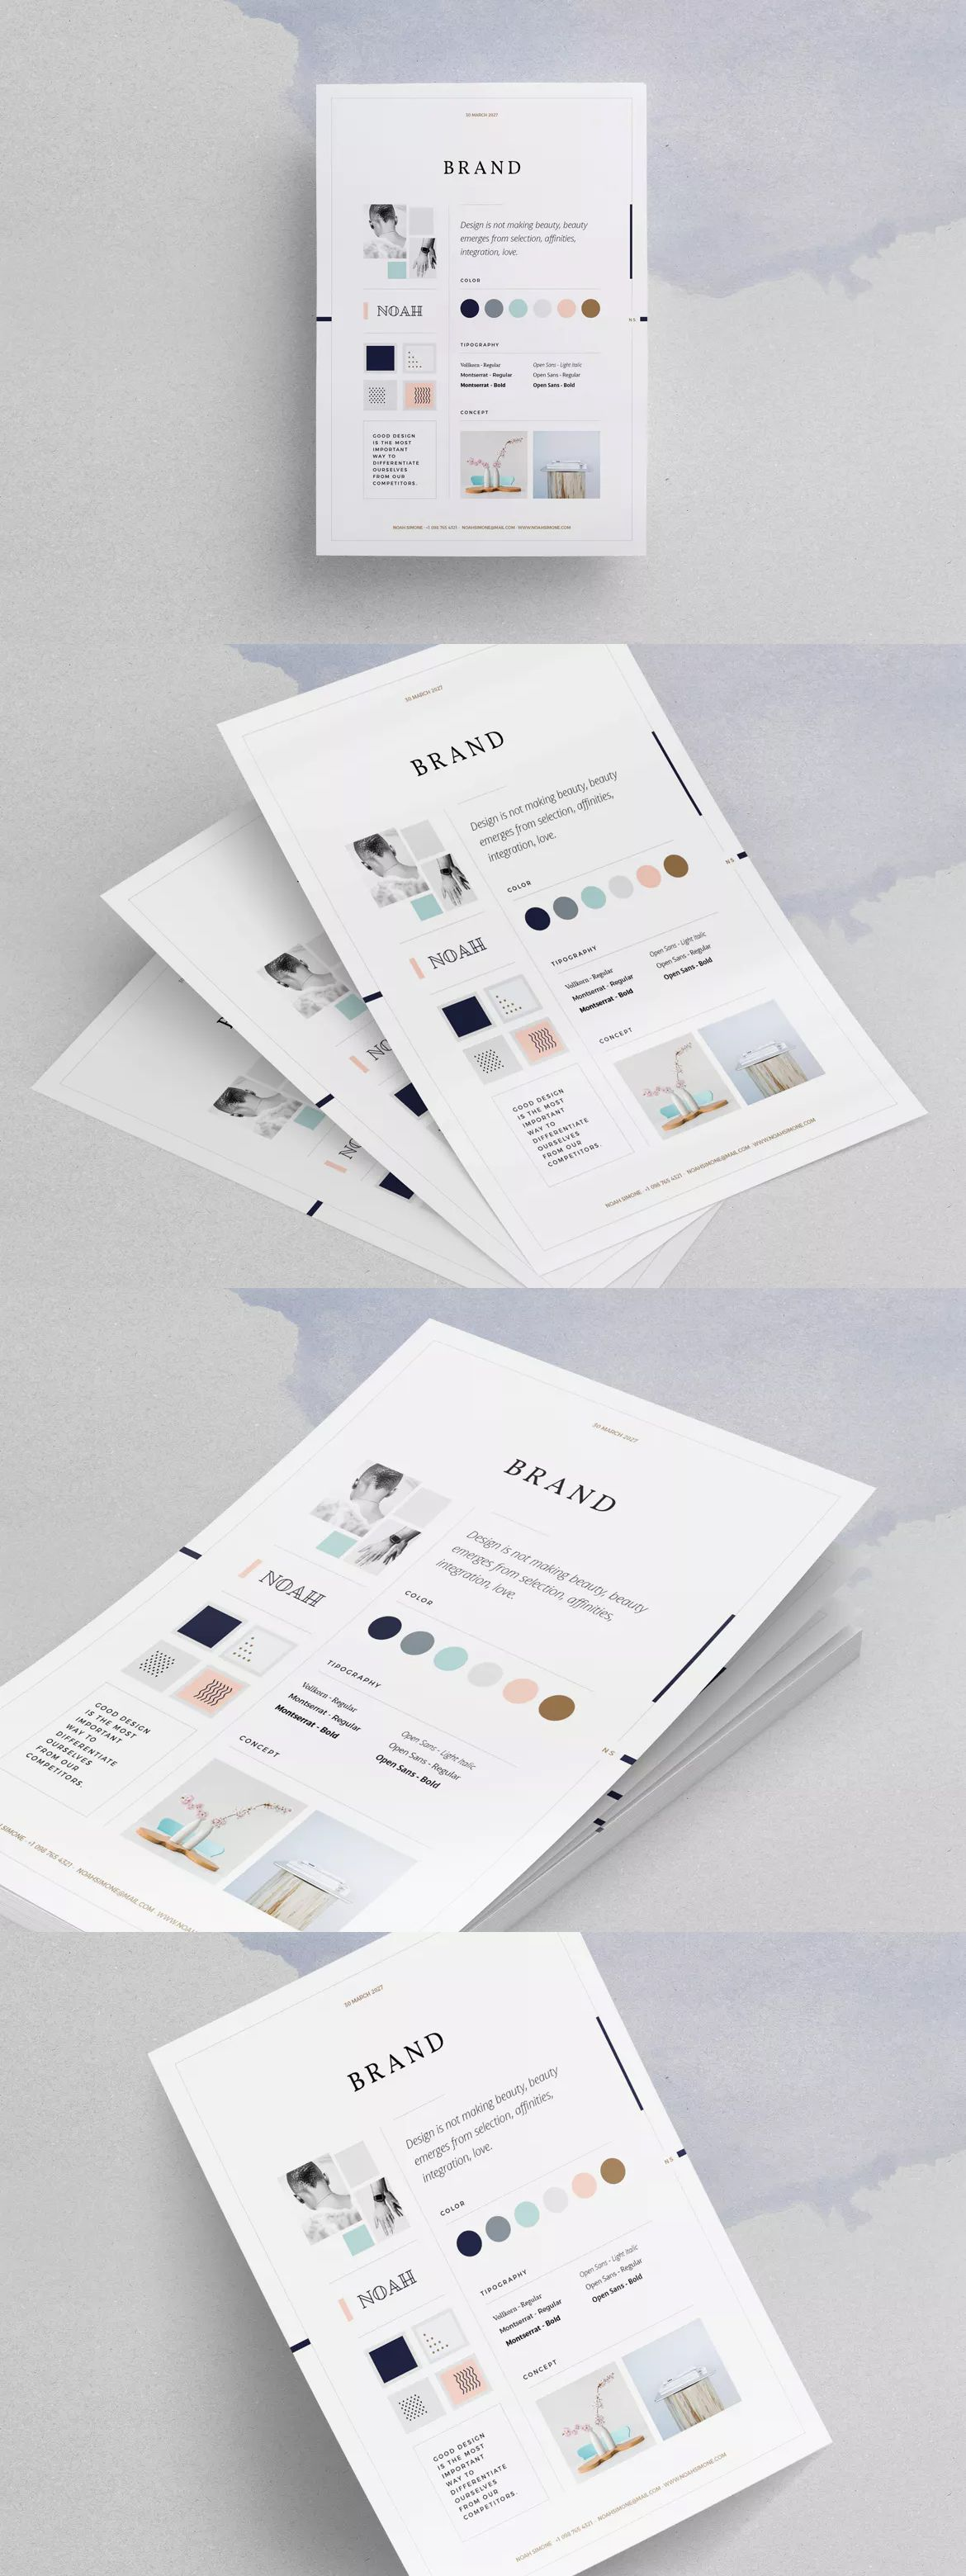 design branding proposal template indesign indd a4 and us letter